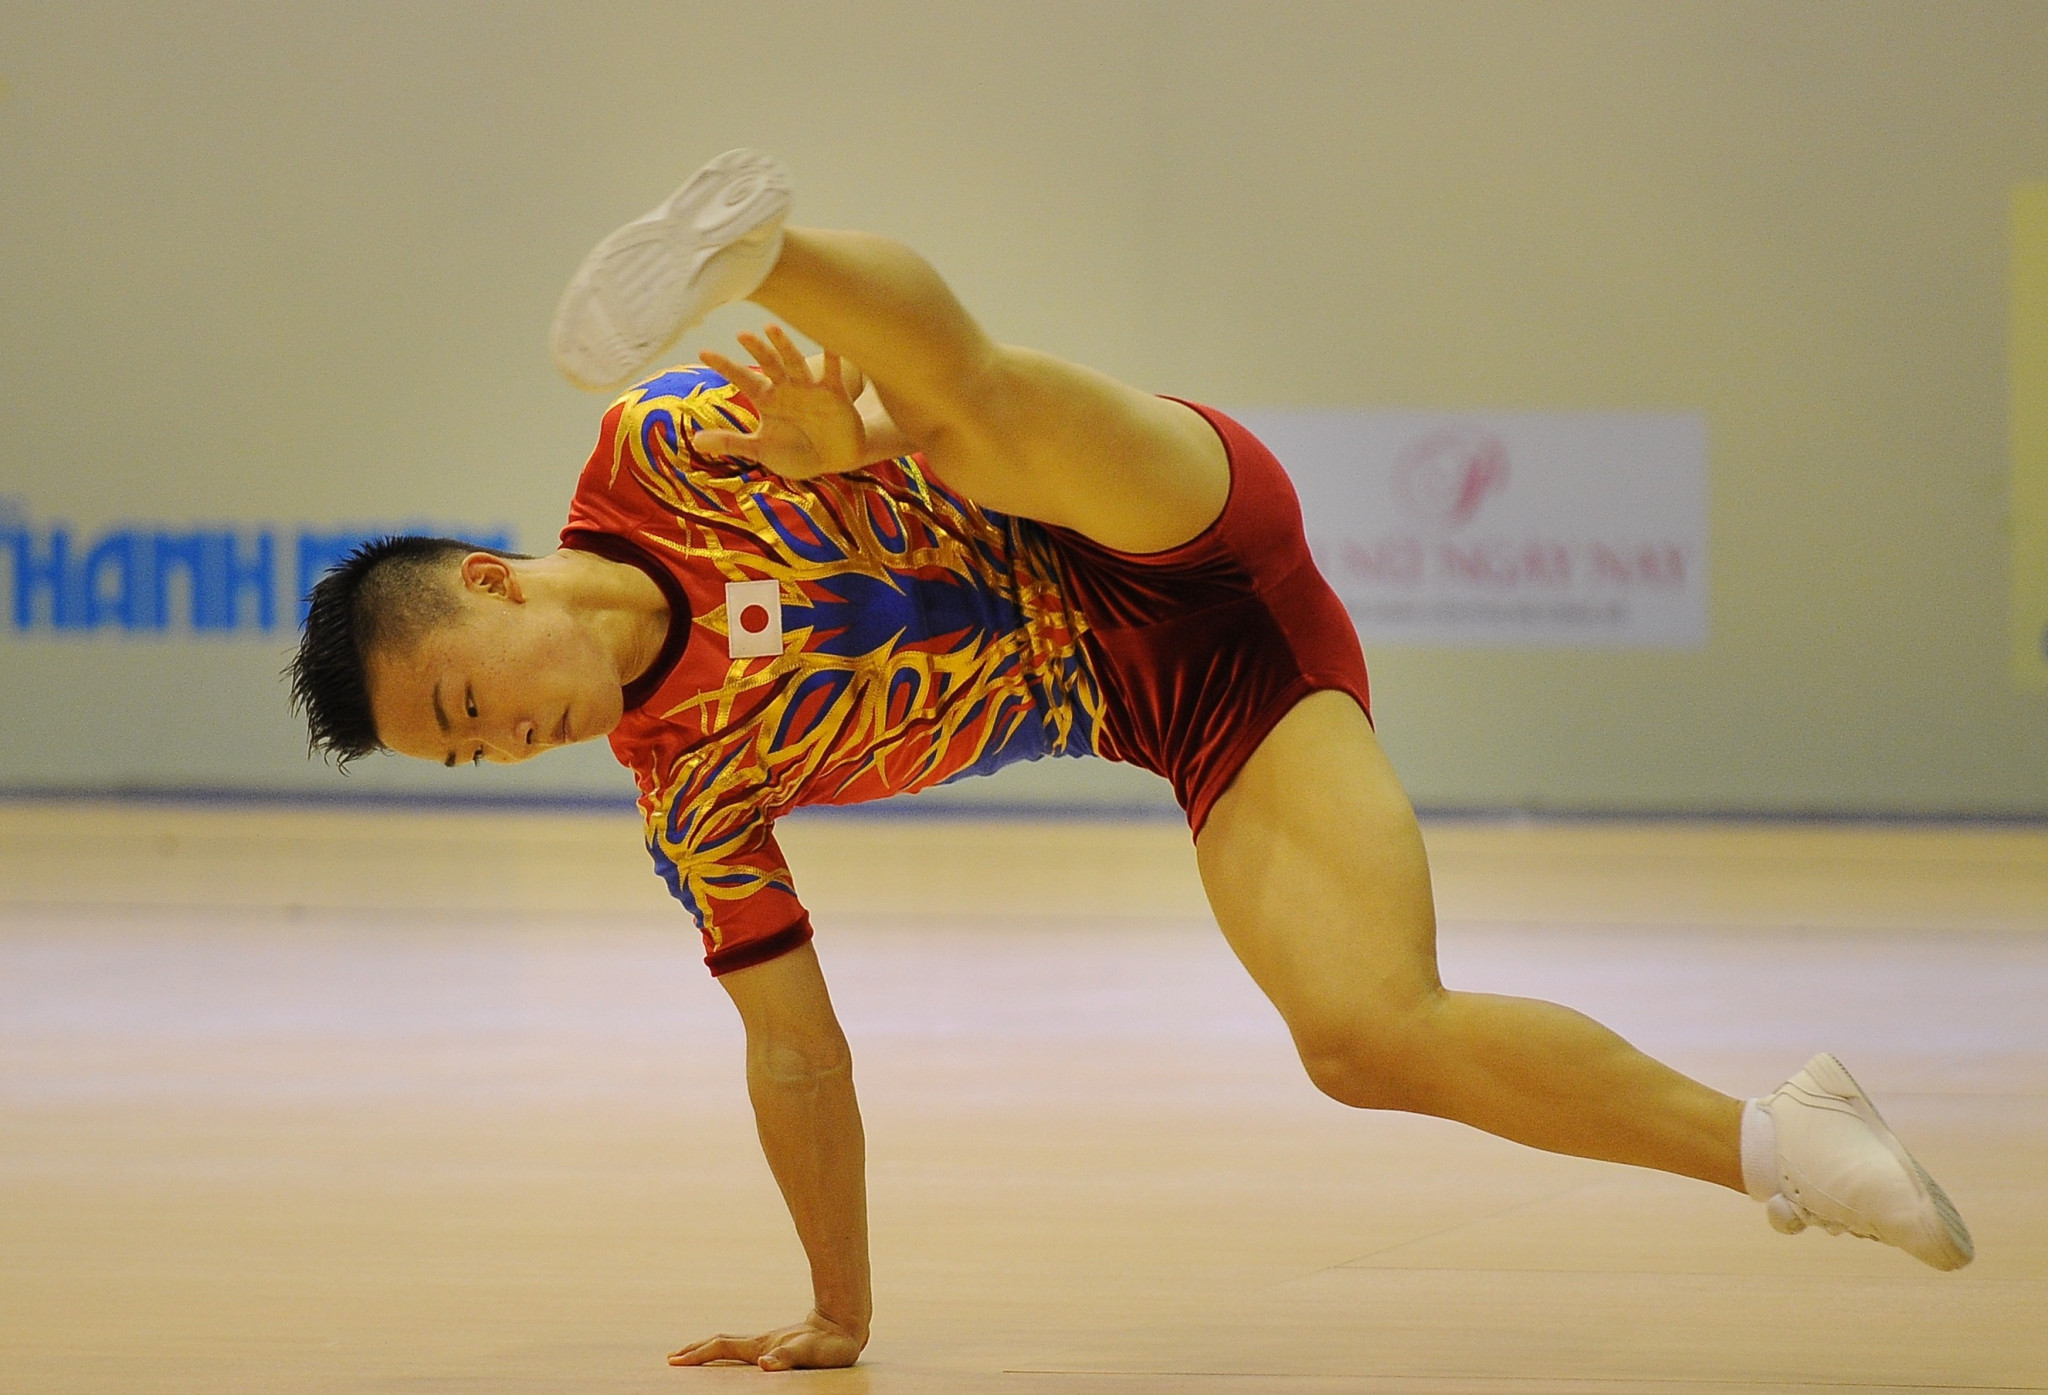 Home favourite Mizuki Saito of Japan led men's qualifying at the FIG Aerobic World Cup ©Getty Images